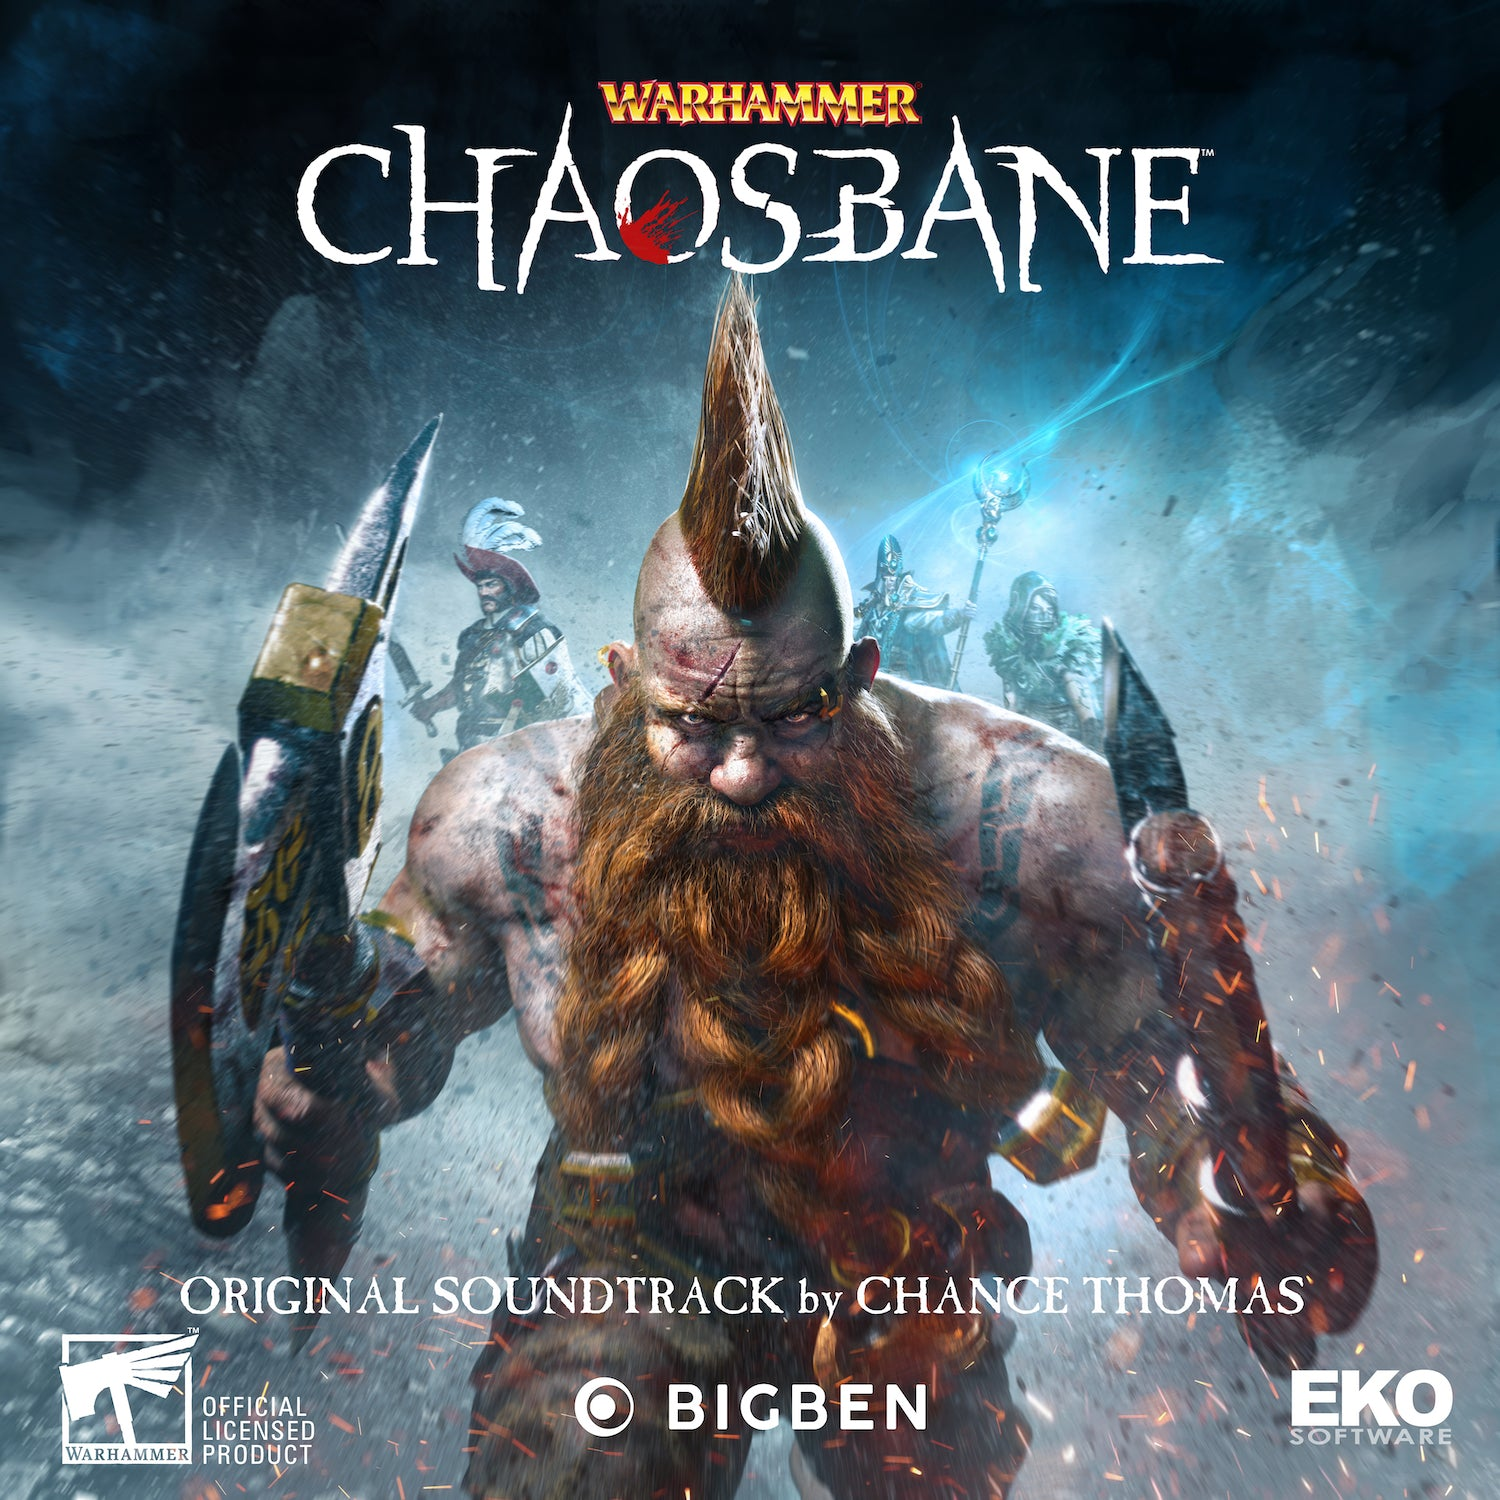 Warhammer: Chaosbane DIGITAL ALBUM